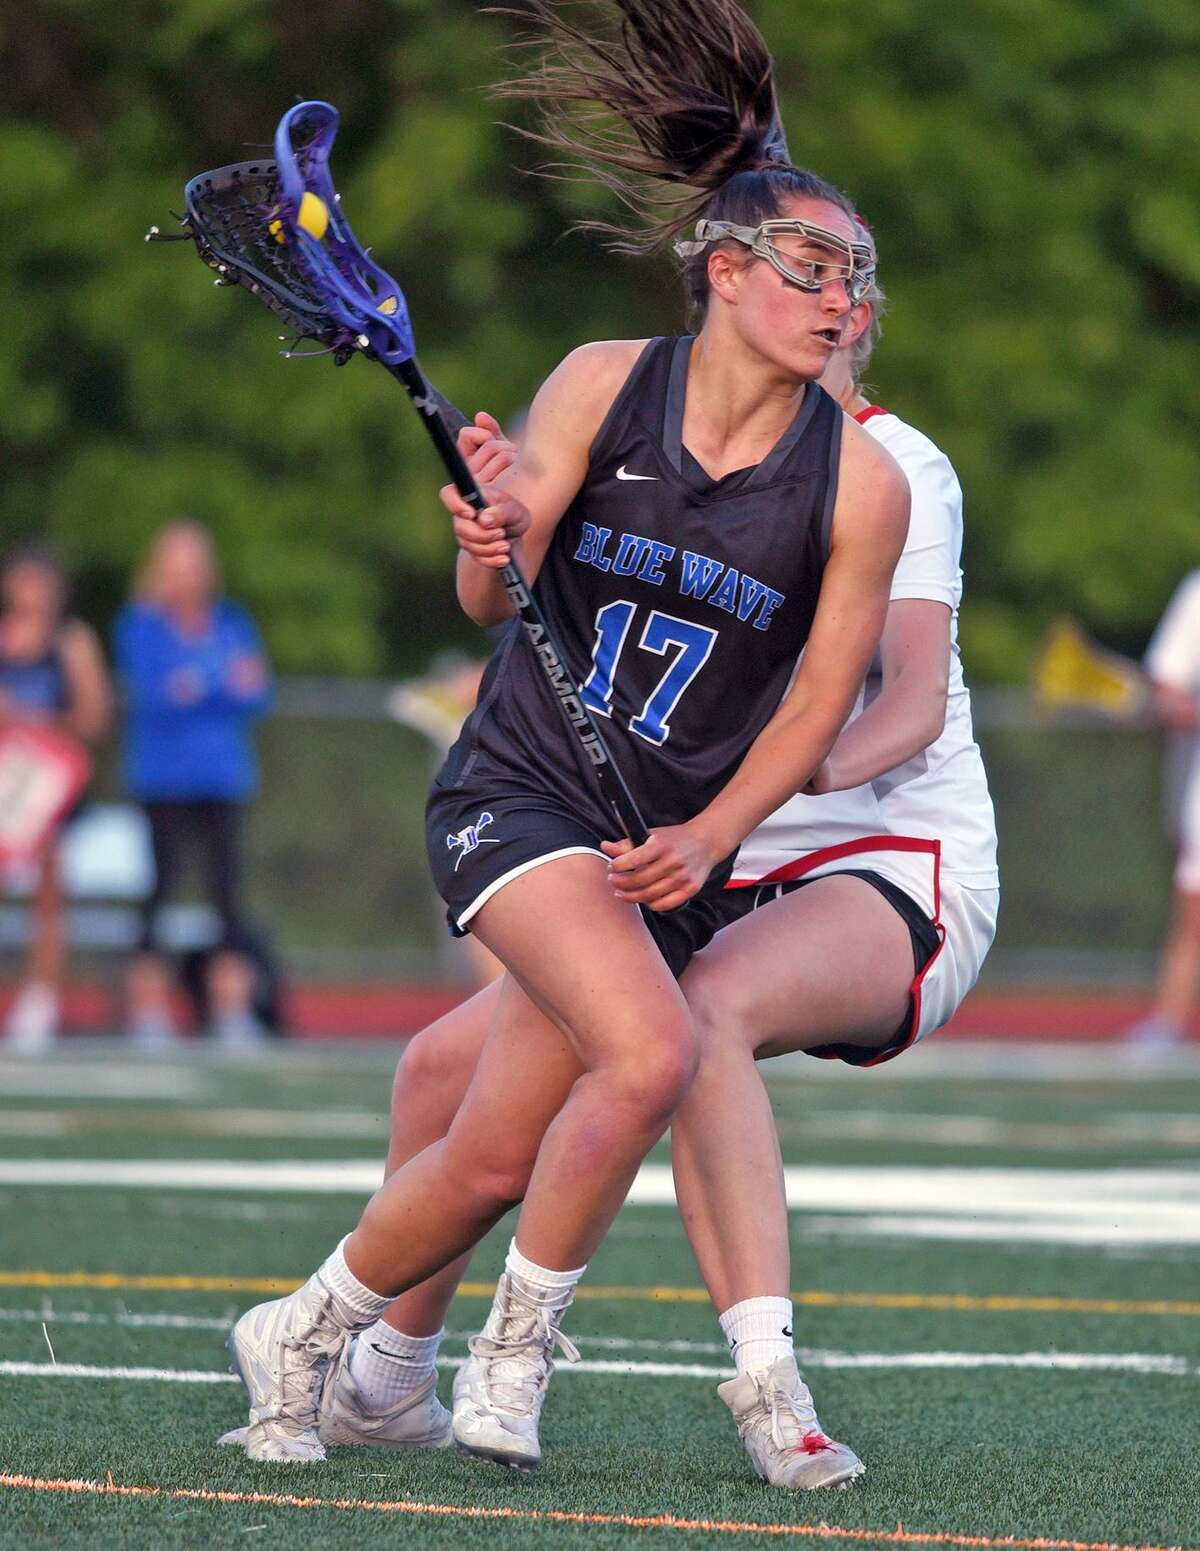 Darien's Sarah Jaques (17) drives past a New Canaan defender during the FCIAC championship on May 22.